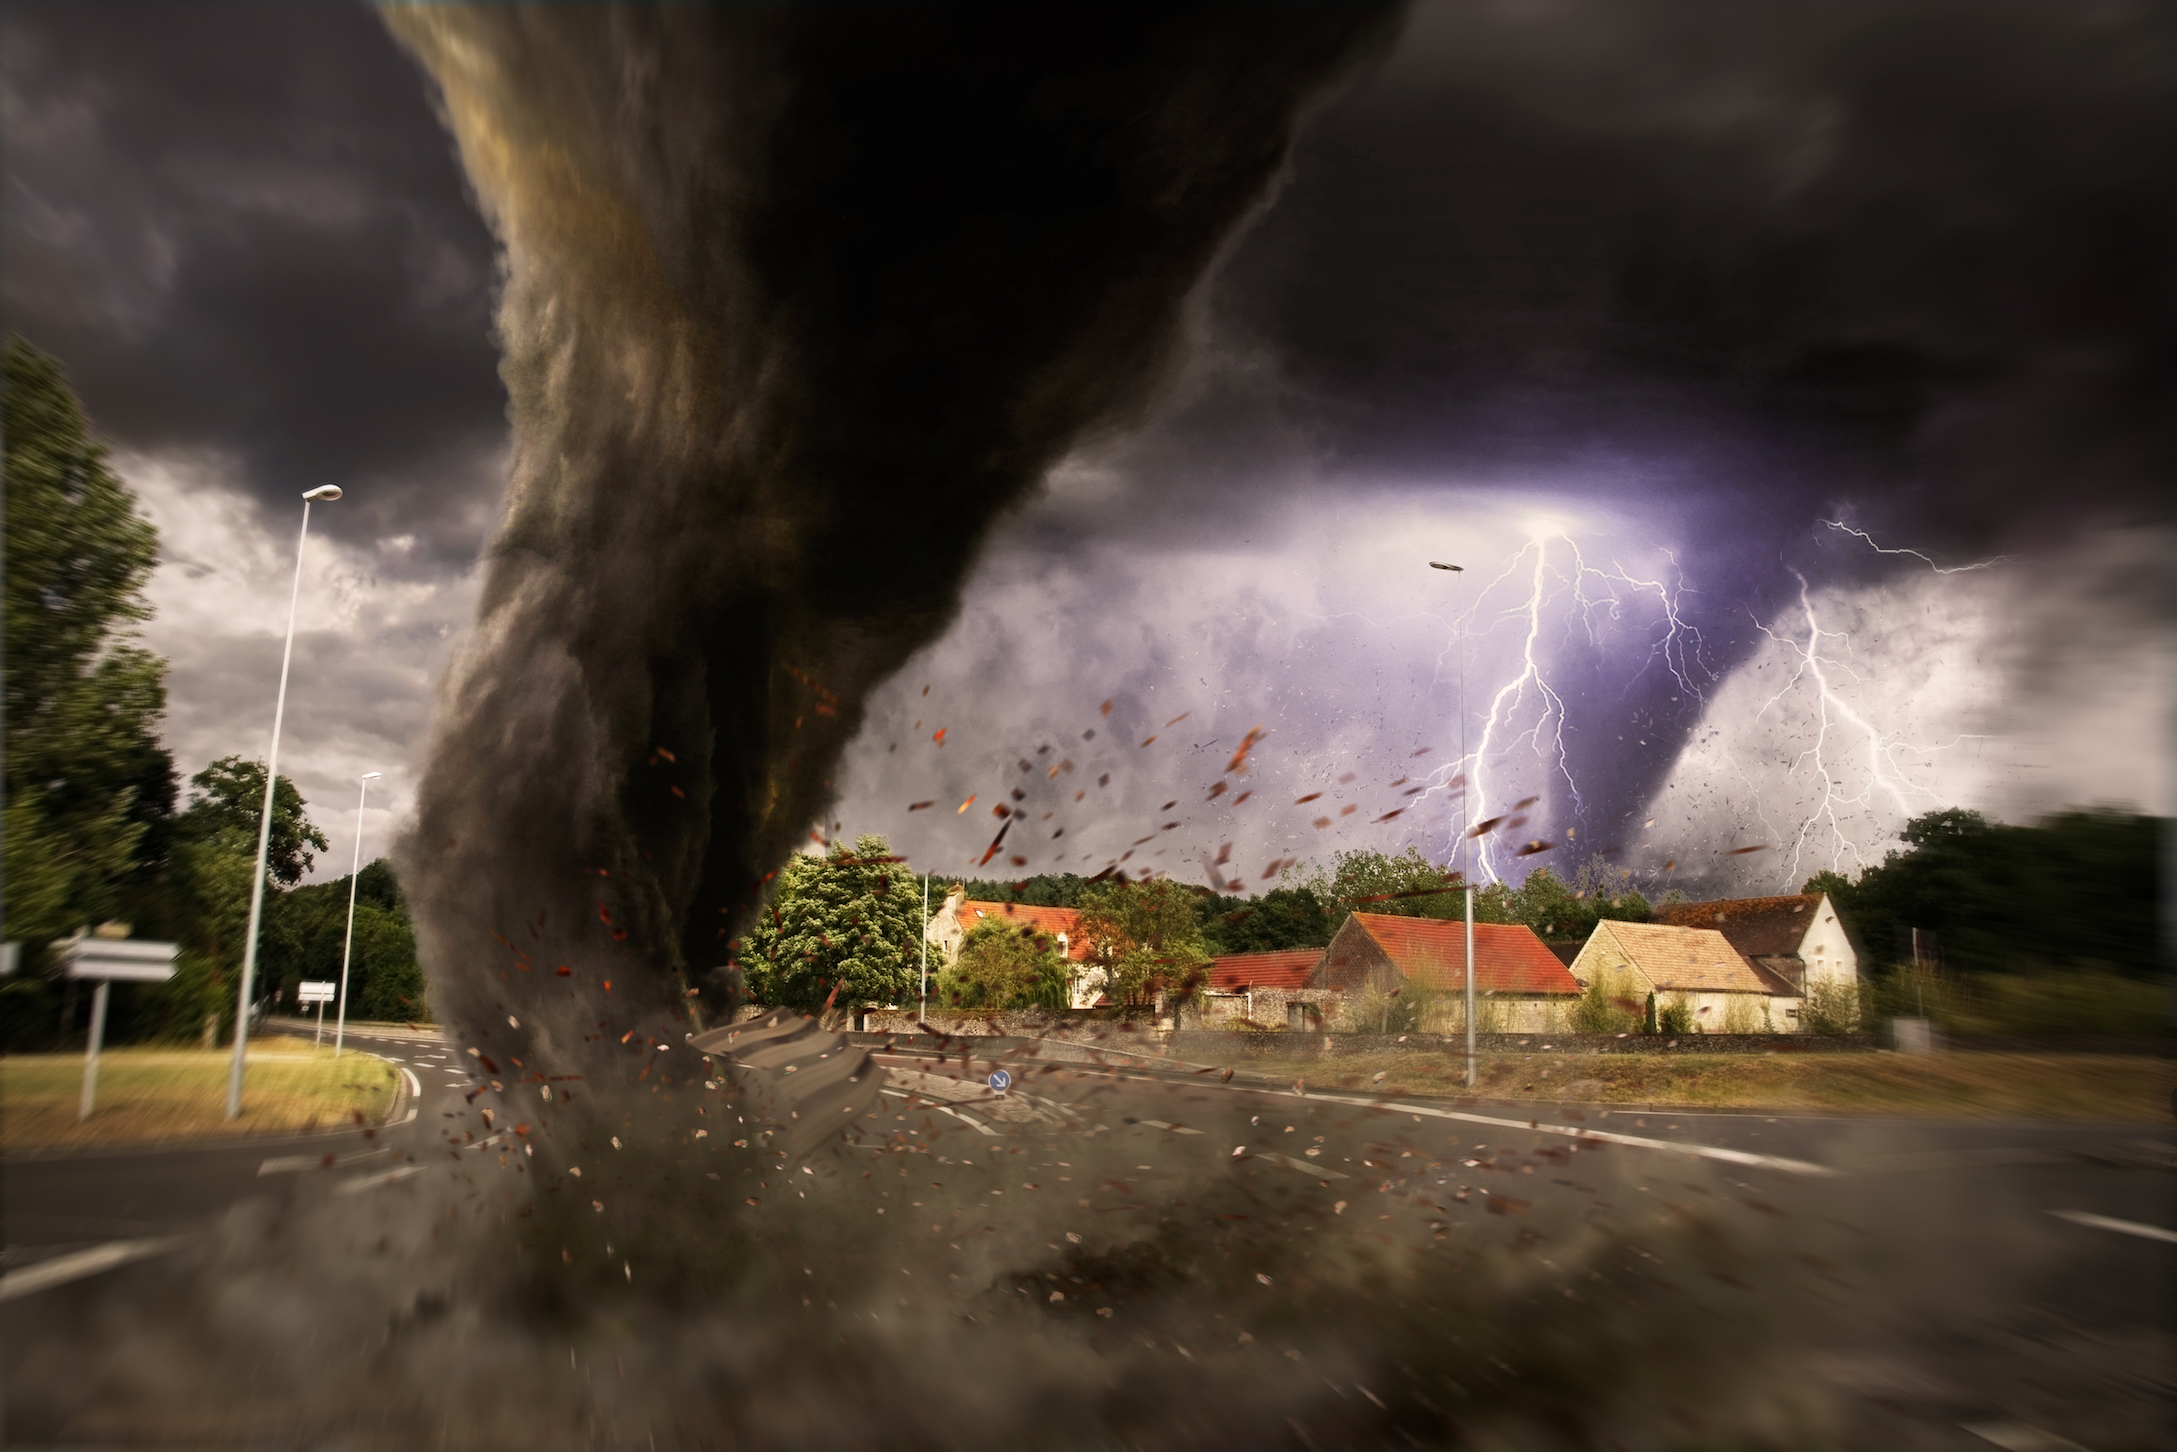 The World Meteorological Organization (WMO) has released a list of the world's most deadly extreme weather events, including tropical cyclones, tornadoes, and hail storms.